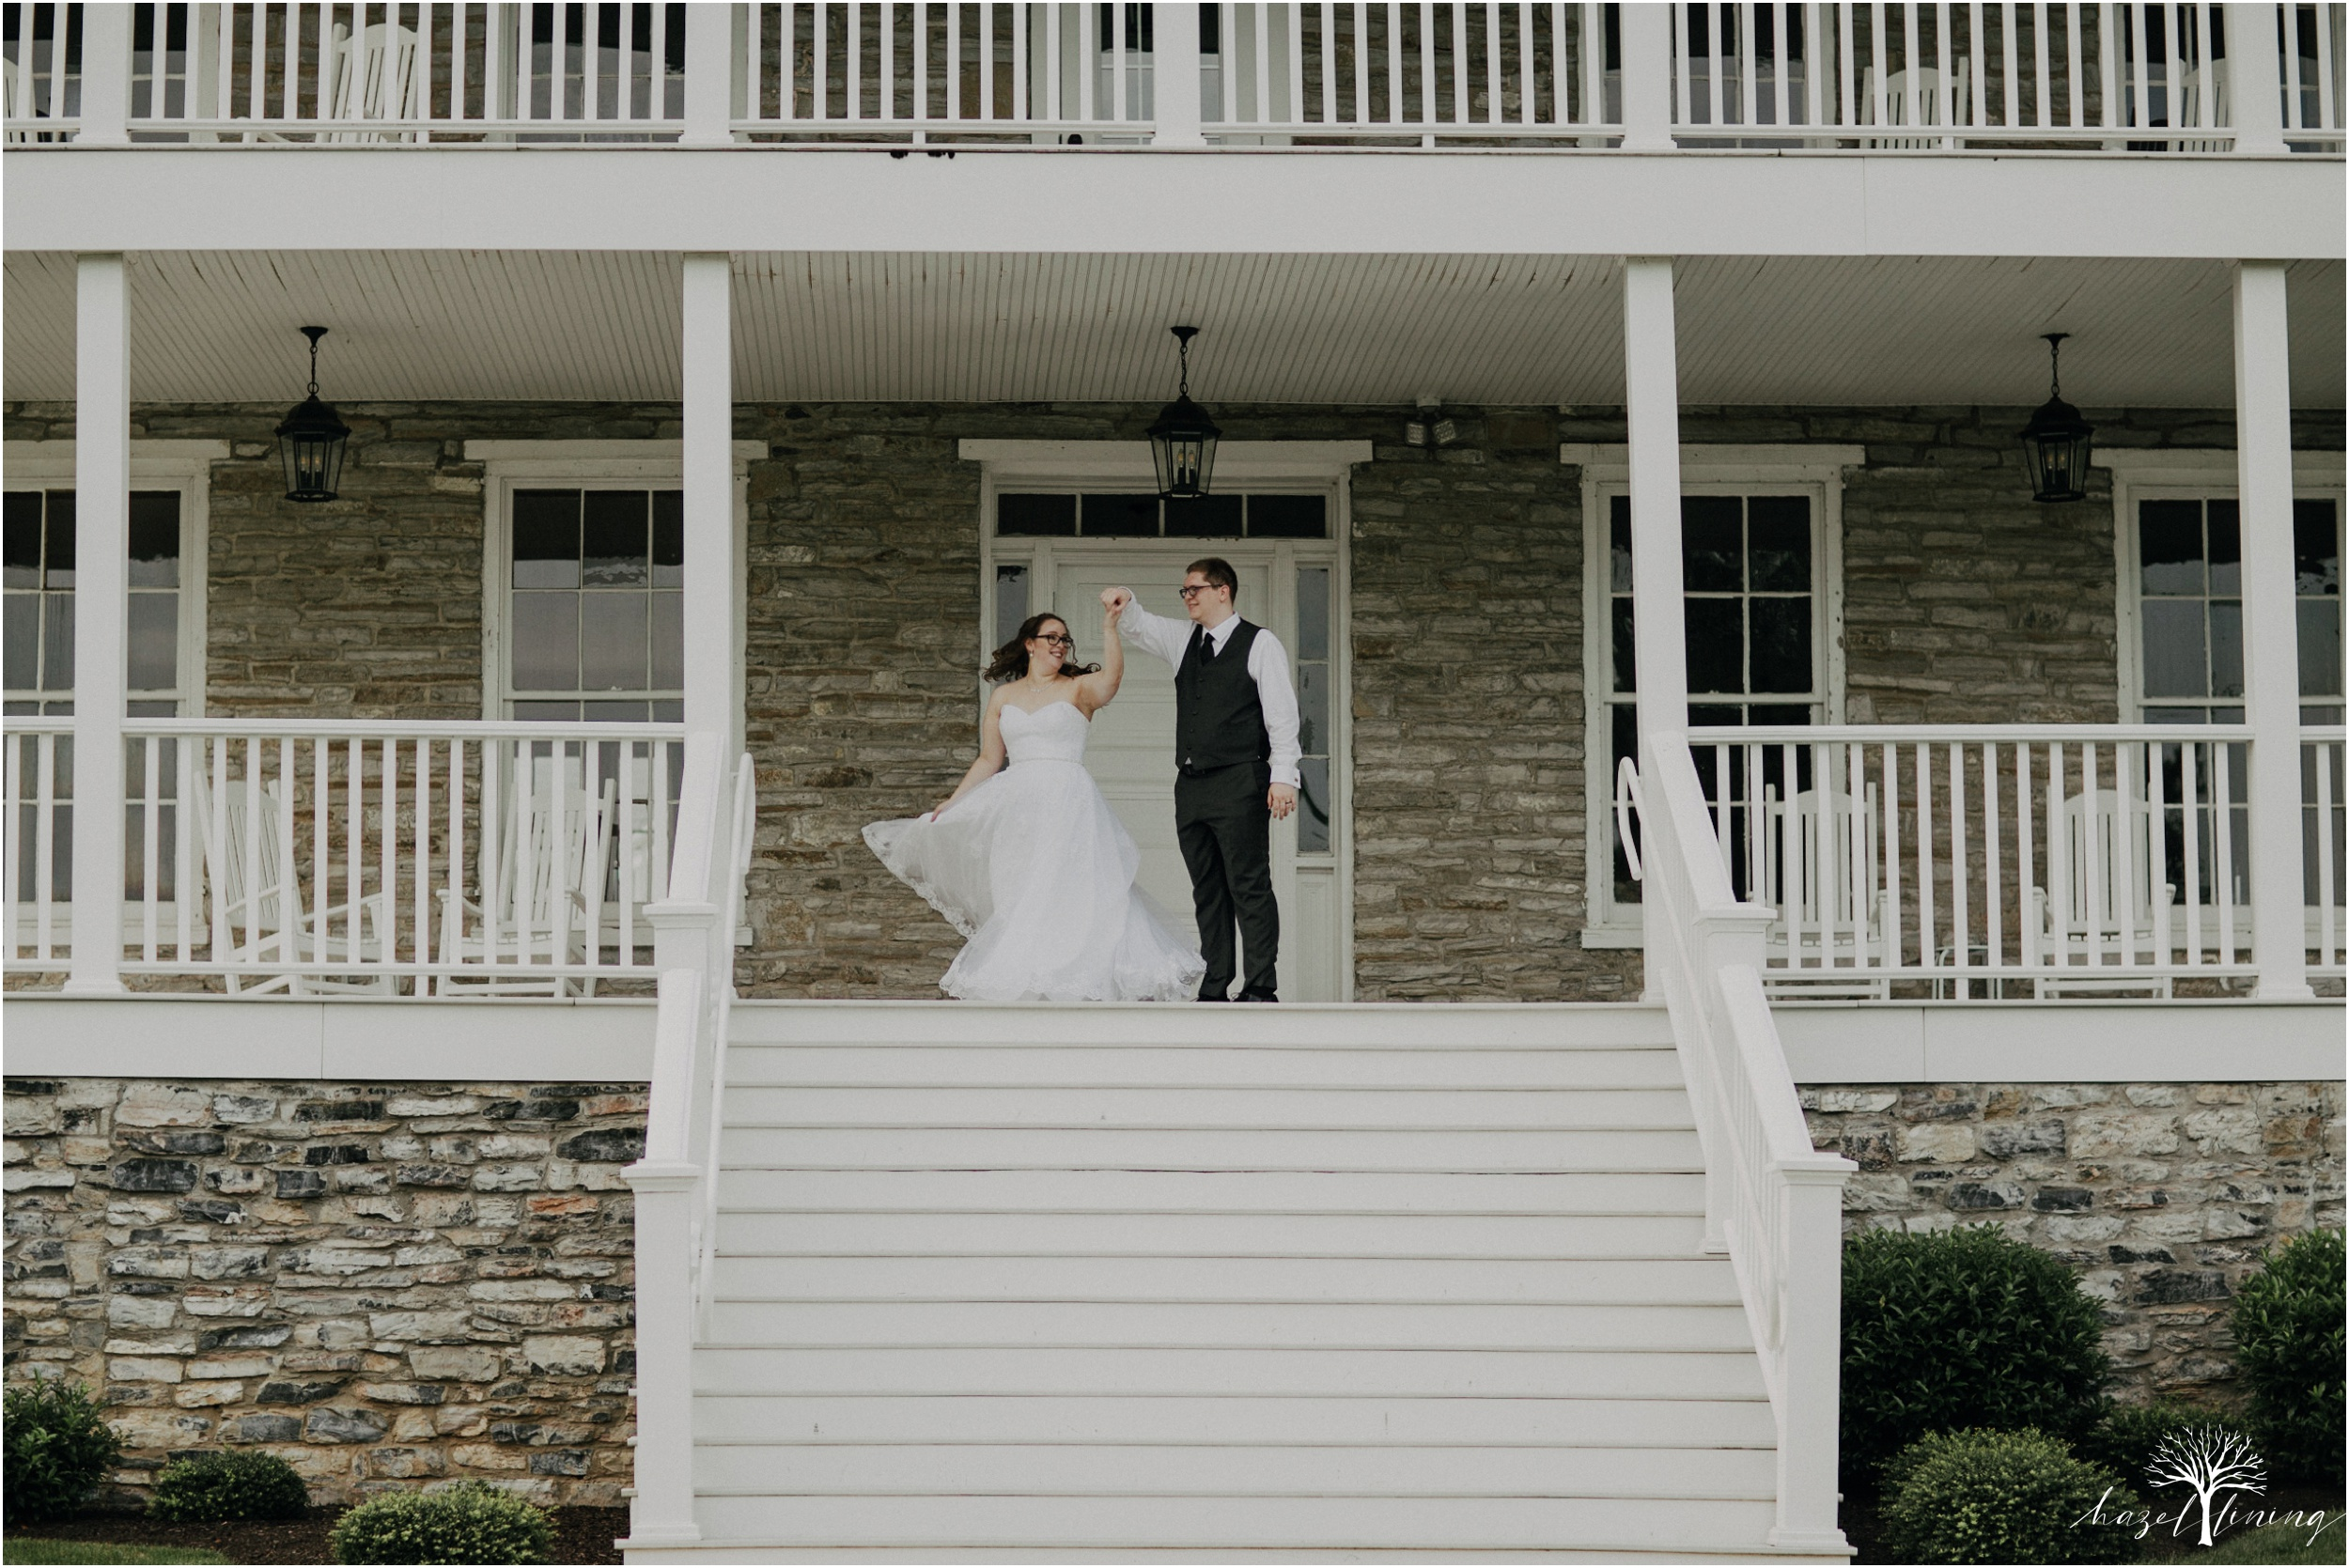 laura-zach-mccaskill-harmony-hall-lebanon-valley-college-summer-wedding-hazel-lining-photography-destination-elopement-wedding-engagement-photography_0158.jpg